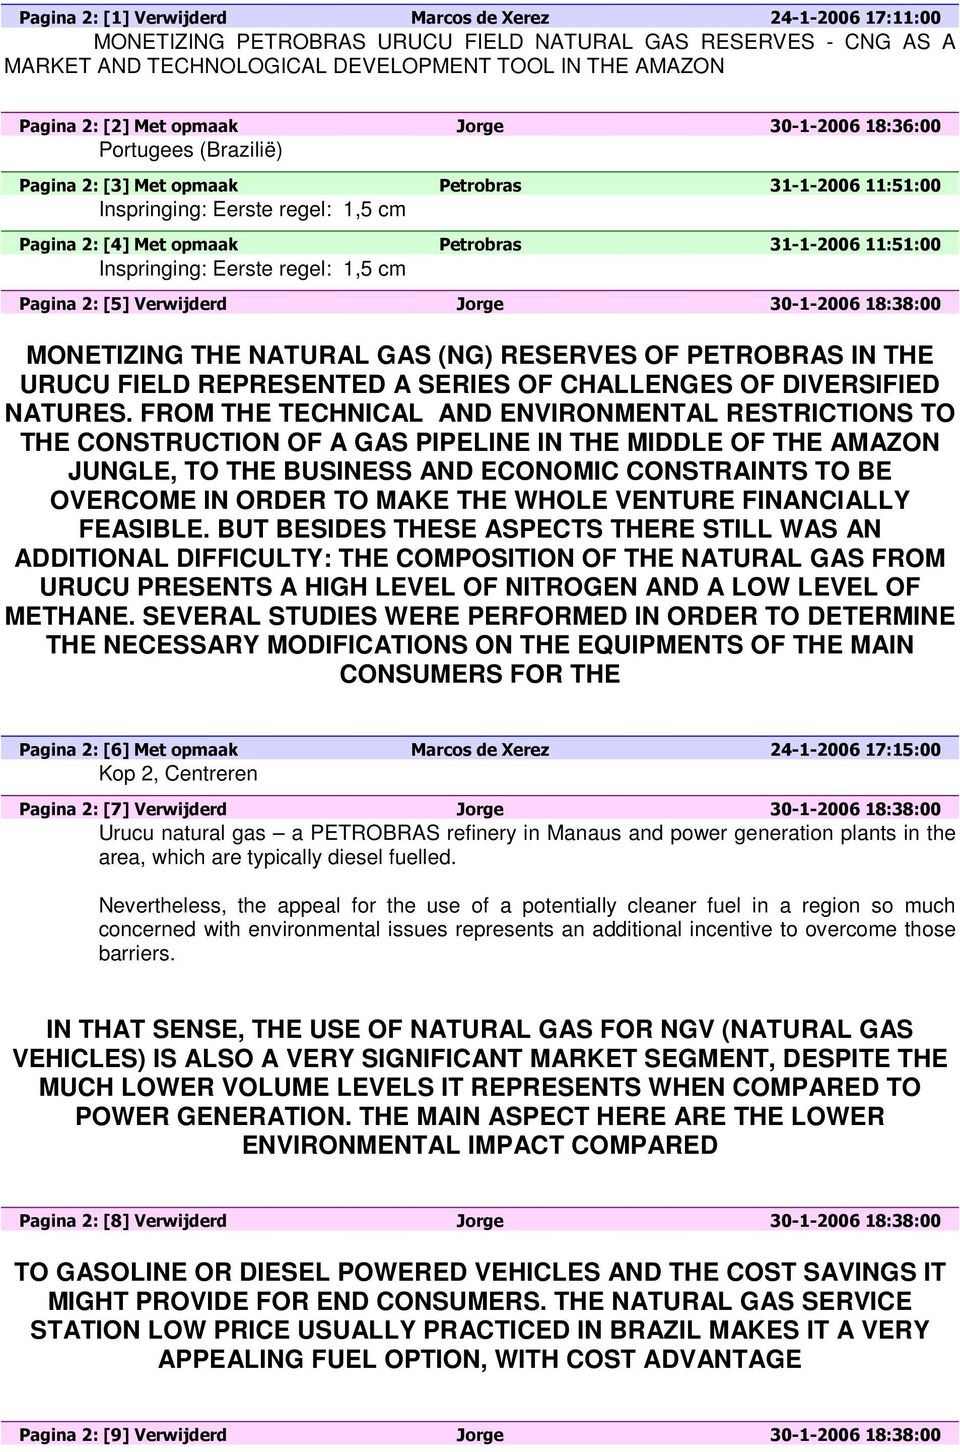 Pagina 2: [5] Verwijderd Jorge 30-1-2006 18:38:00 MONETIZING THE NATURAL GAS (NG) RESERVES OF PETROBRAS IN THE URUCU FIELD REPRESENTED A SERIES OF CHALLENGES OF DIVERSIFIED NATURES.